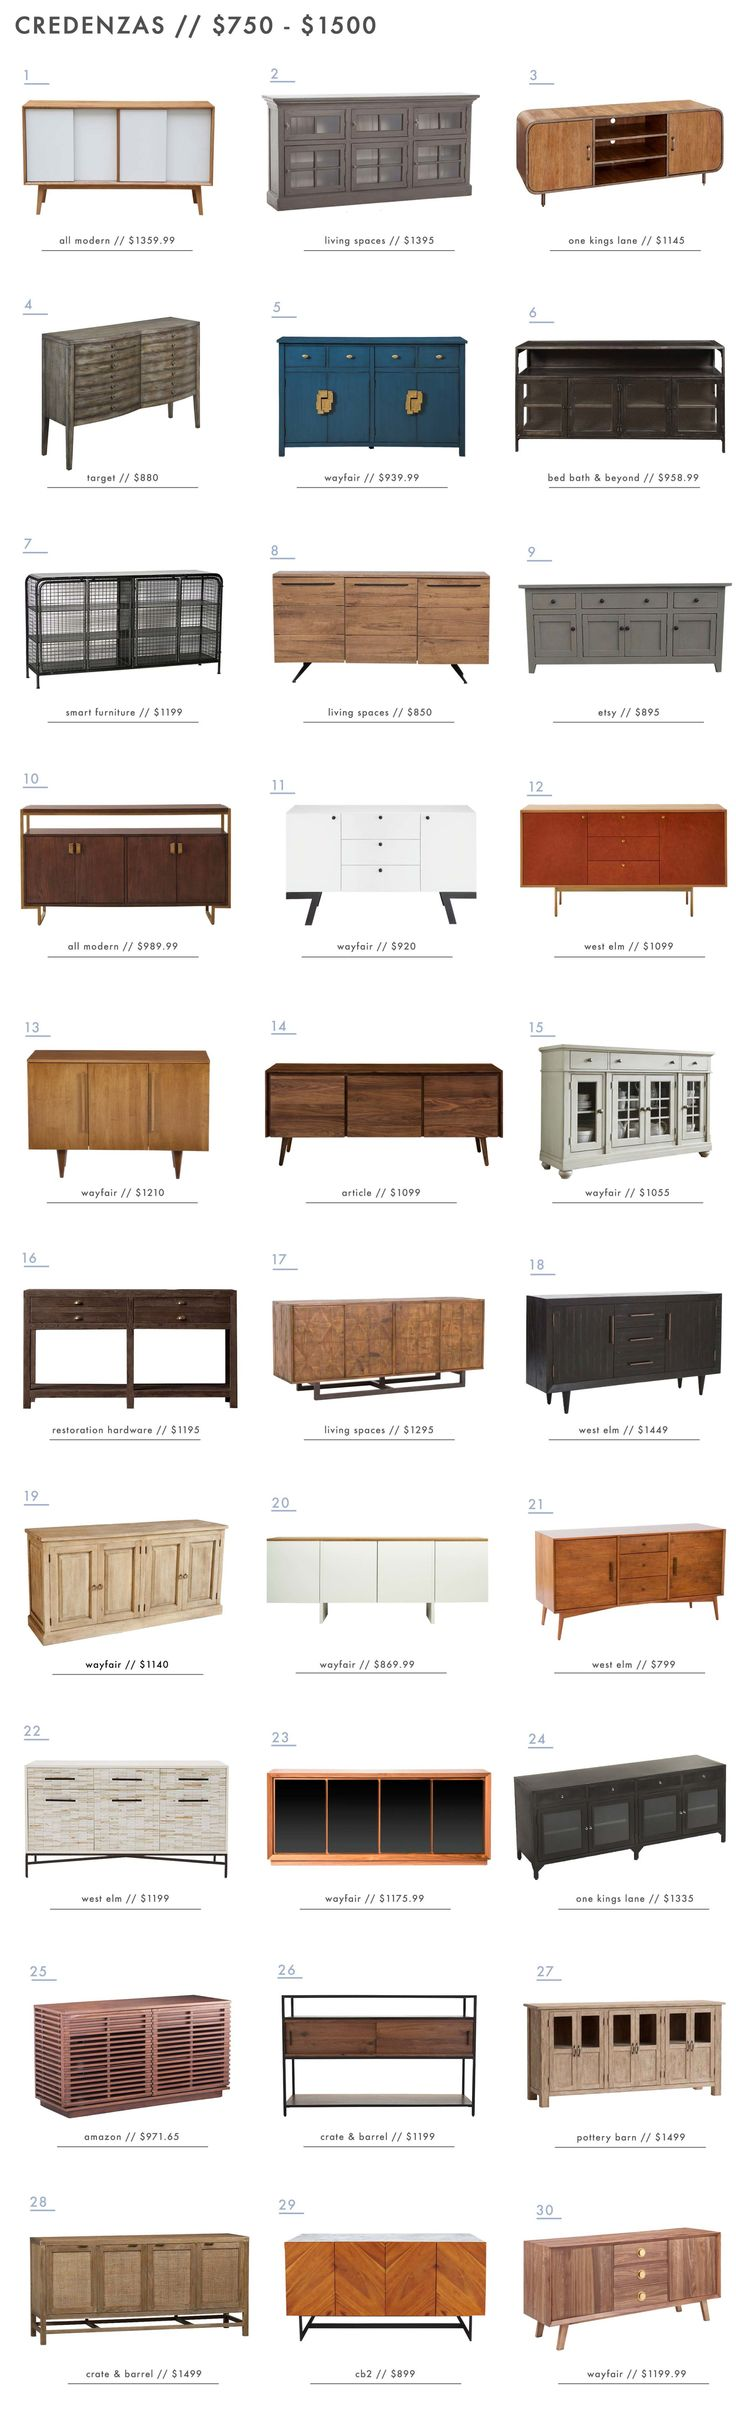 best 25 credenza decor ideas on pinterest credenza marble top dining room sideboard credenza traditional